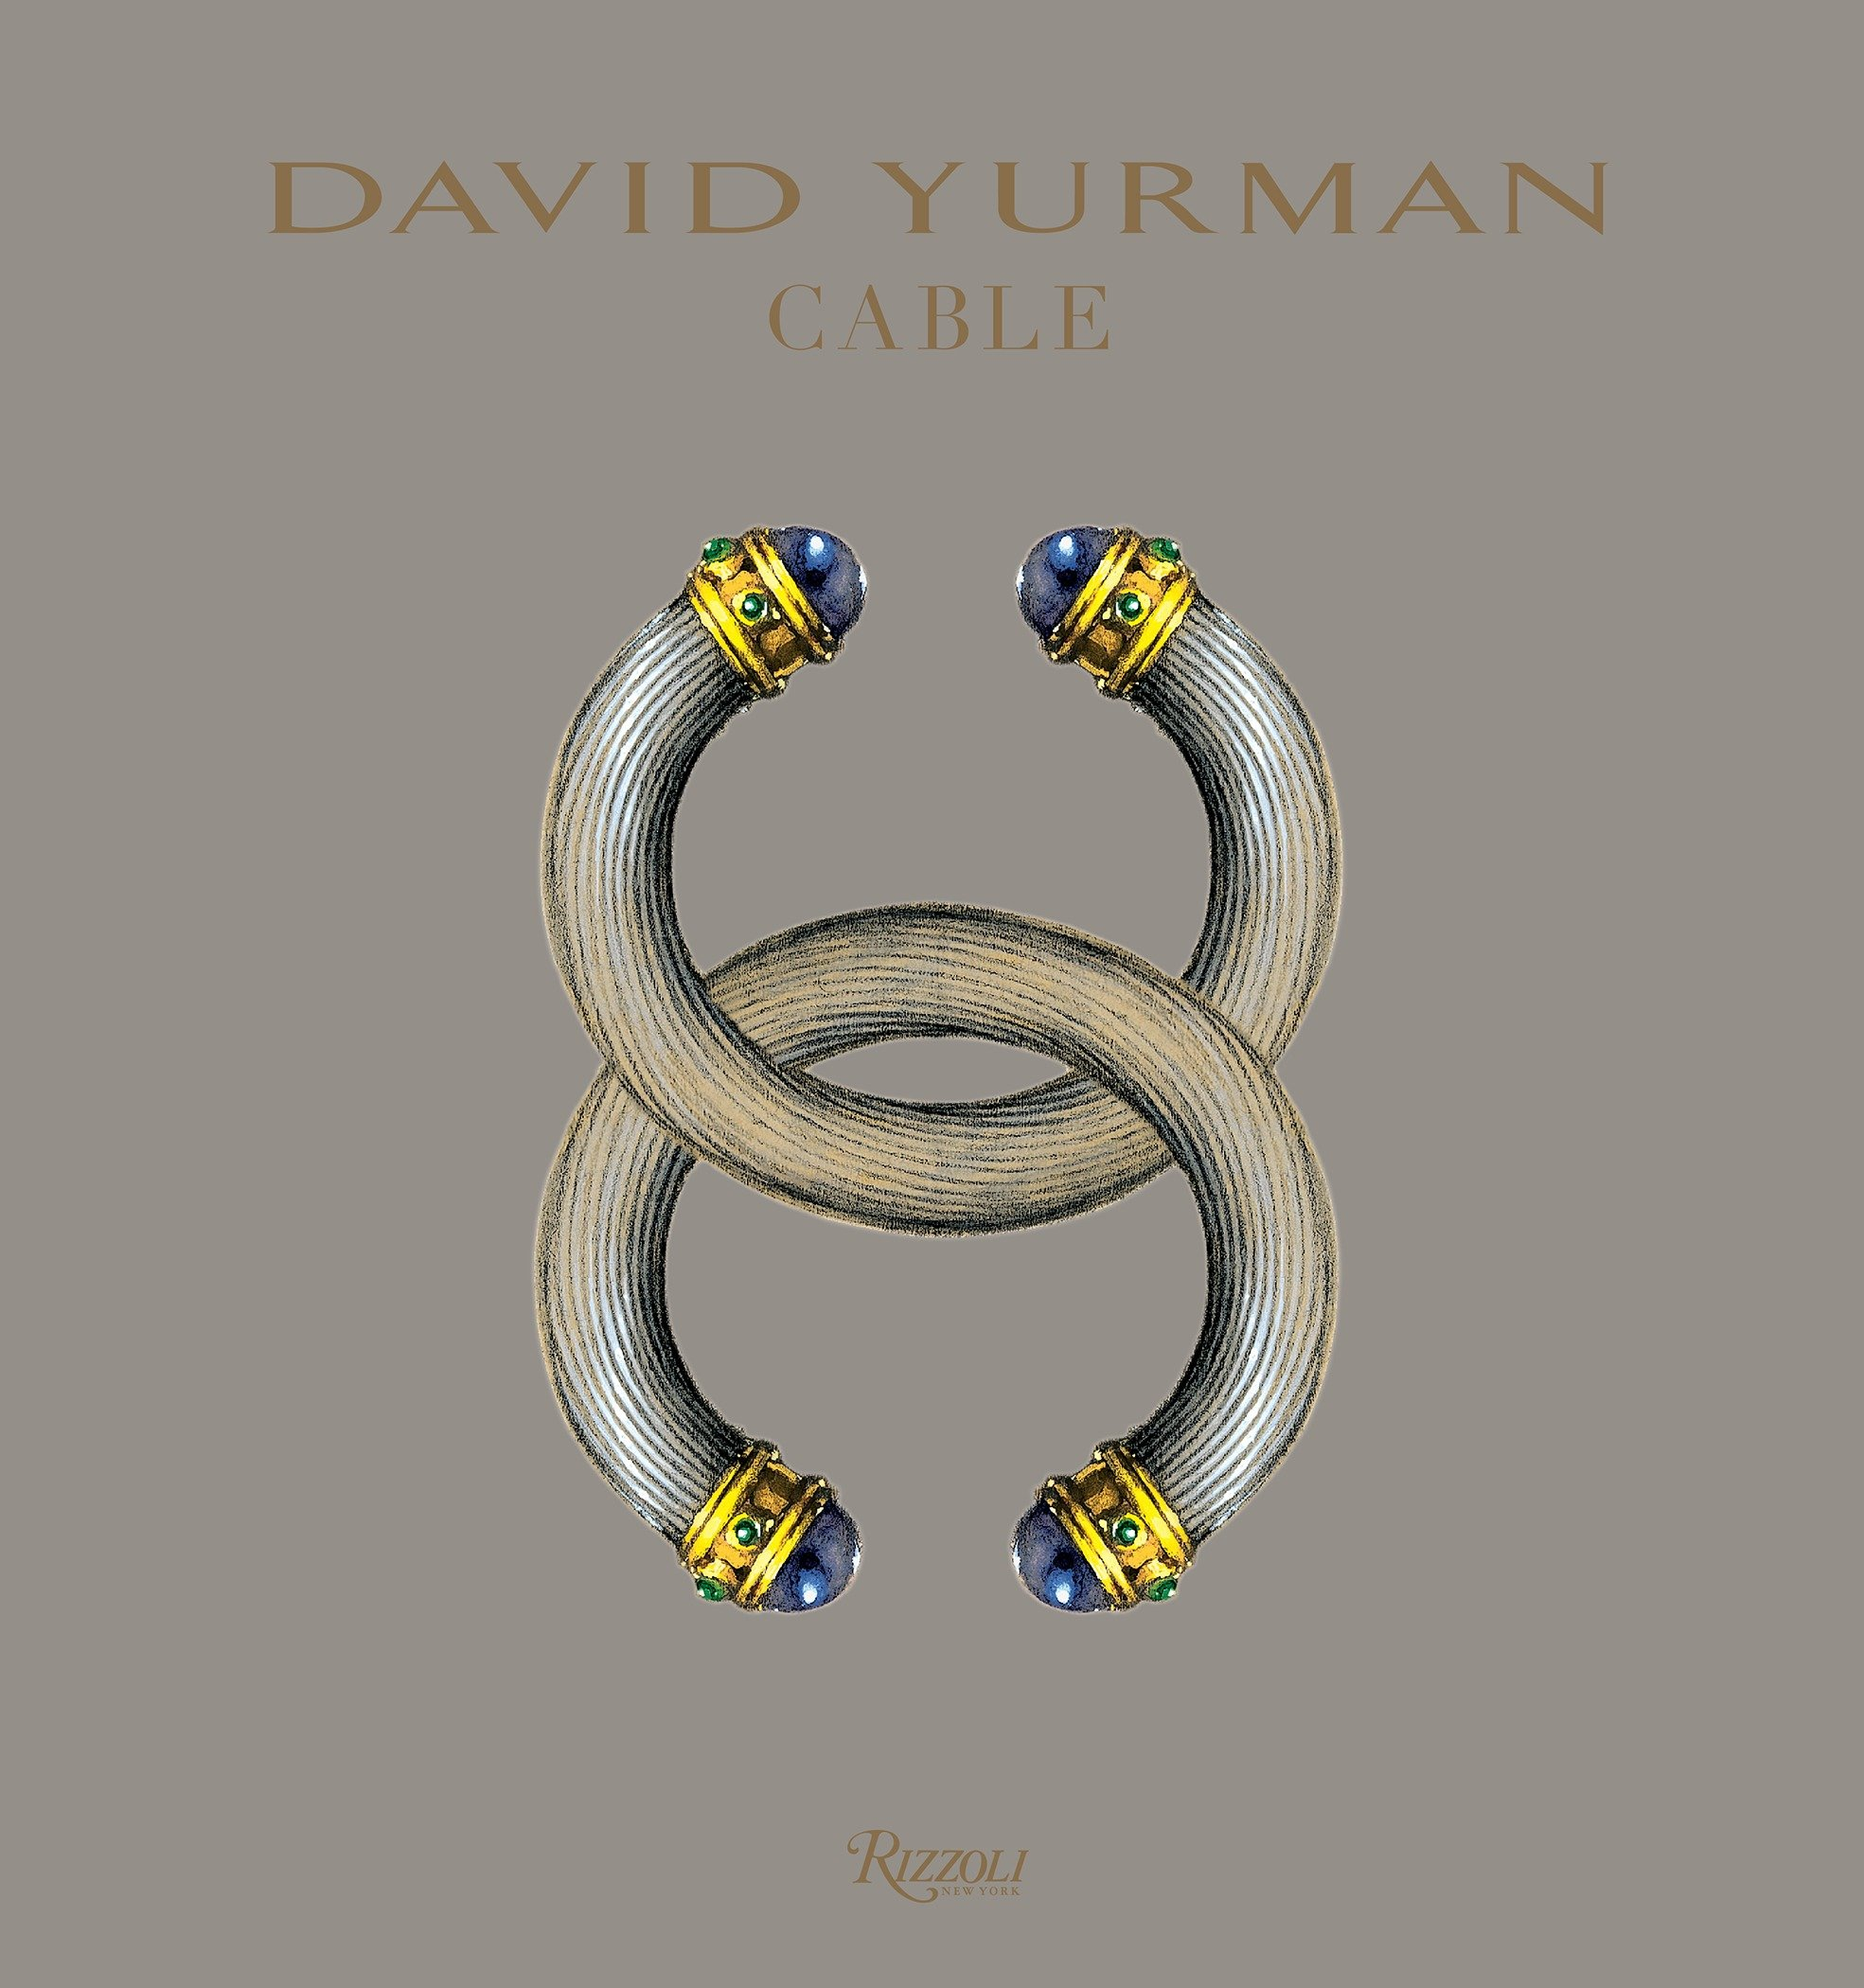 David Yurman: Cable